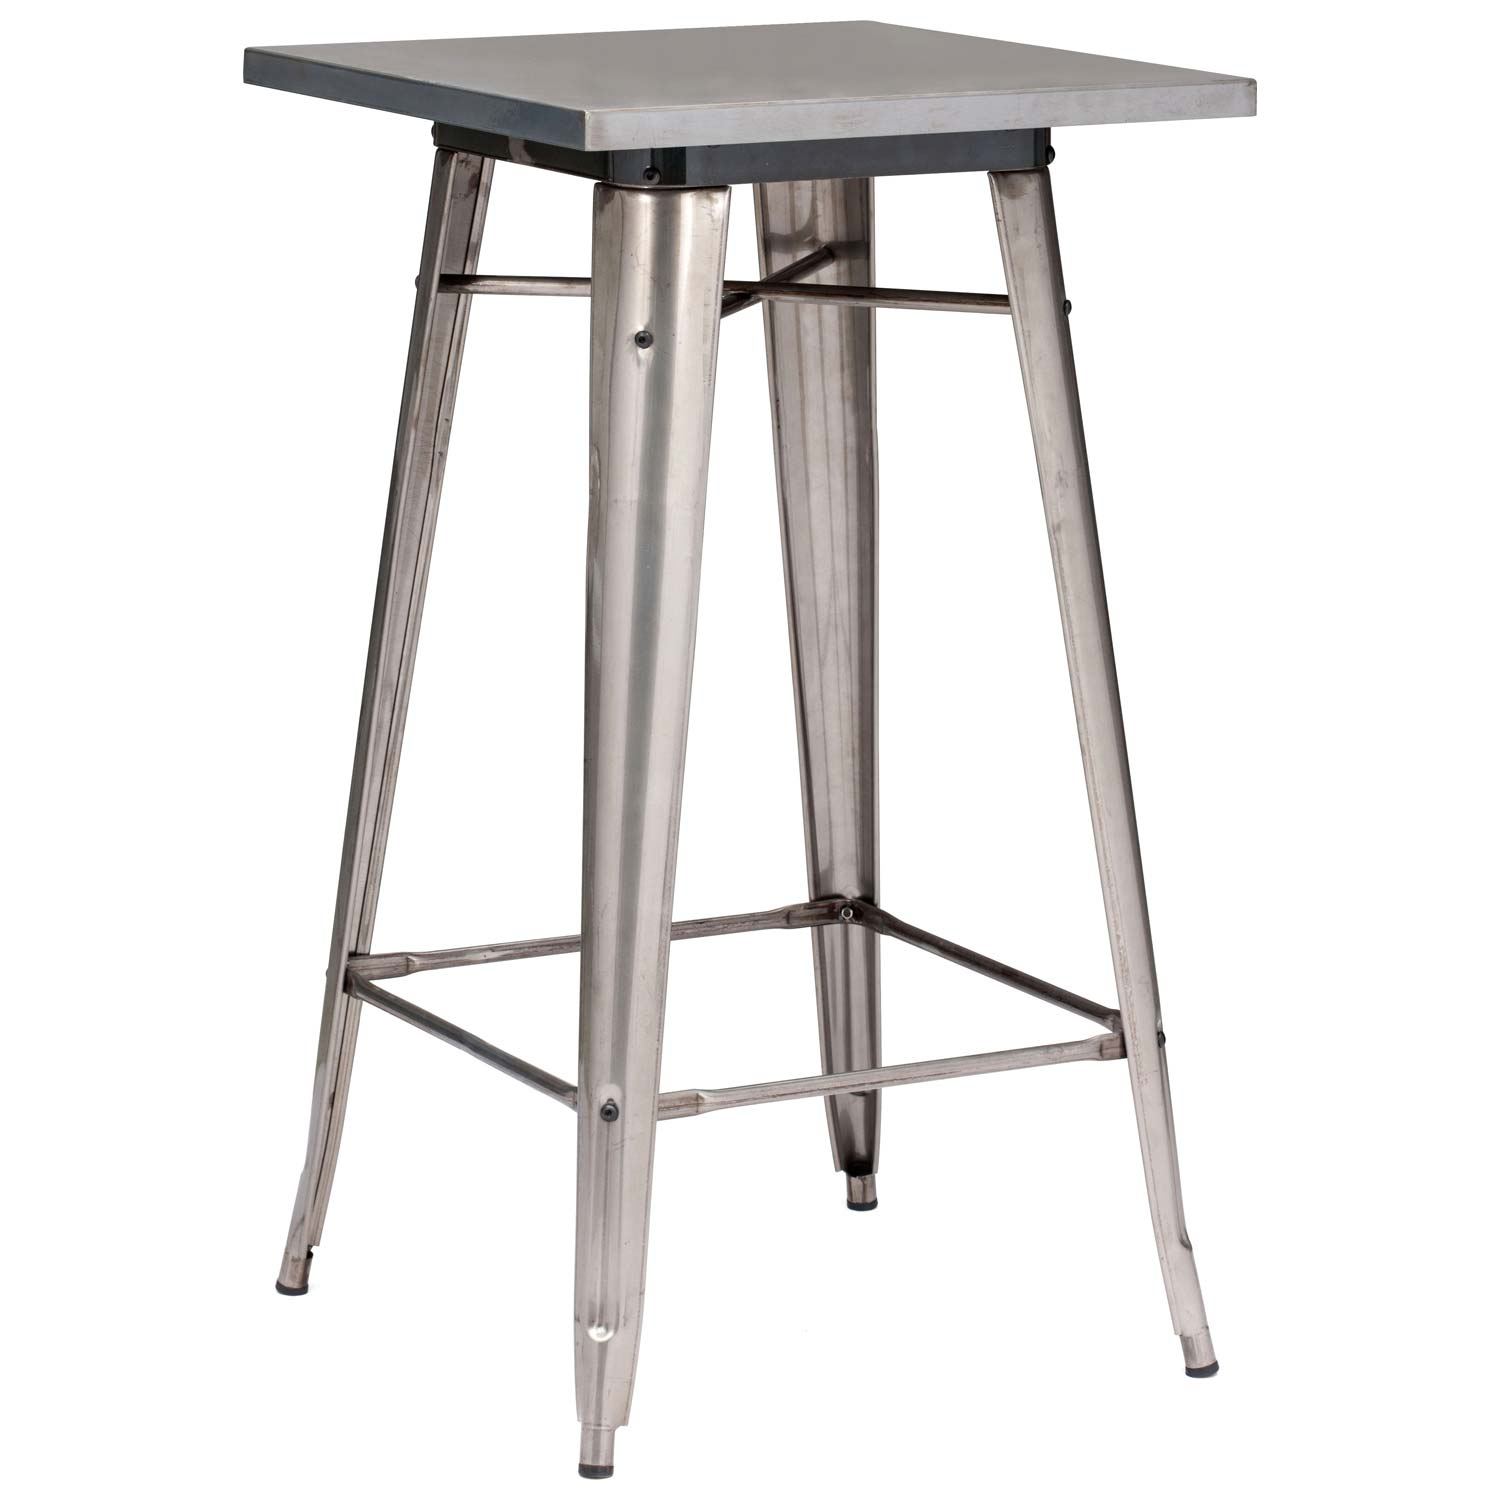 Olympia Square Bar Table - Steel, Gunmetal